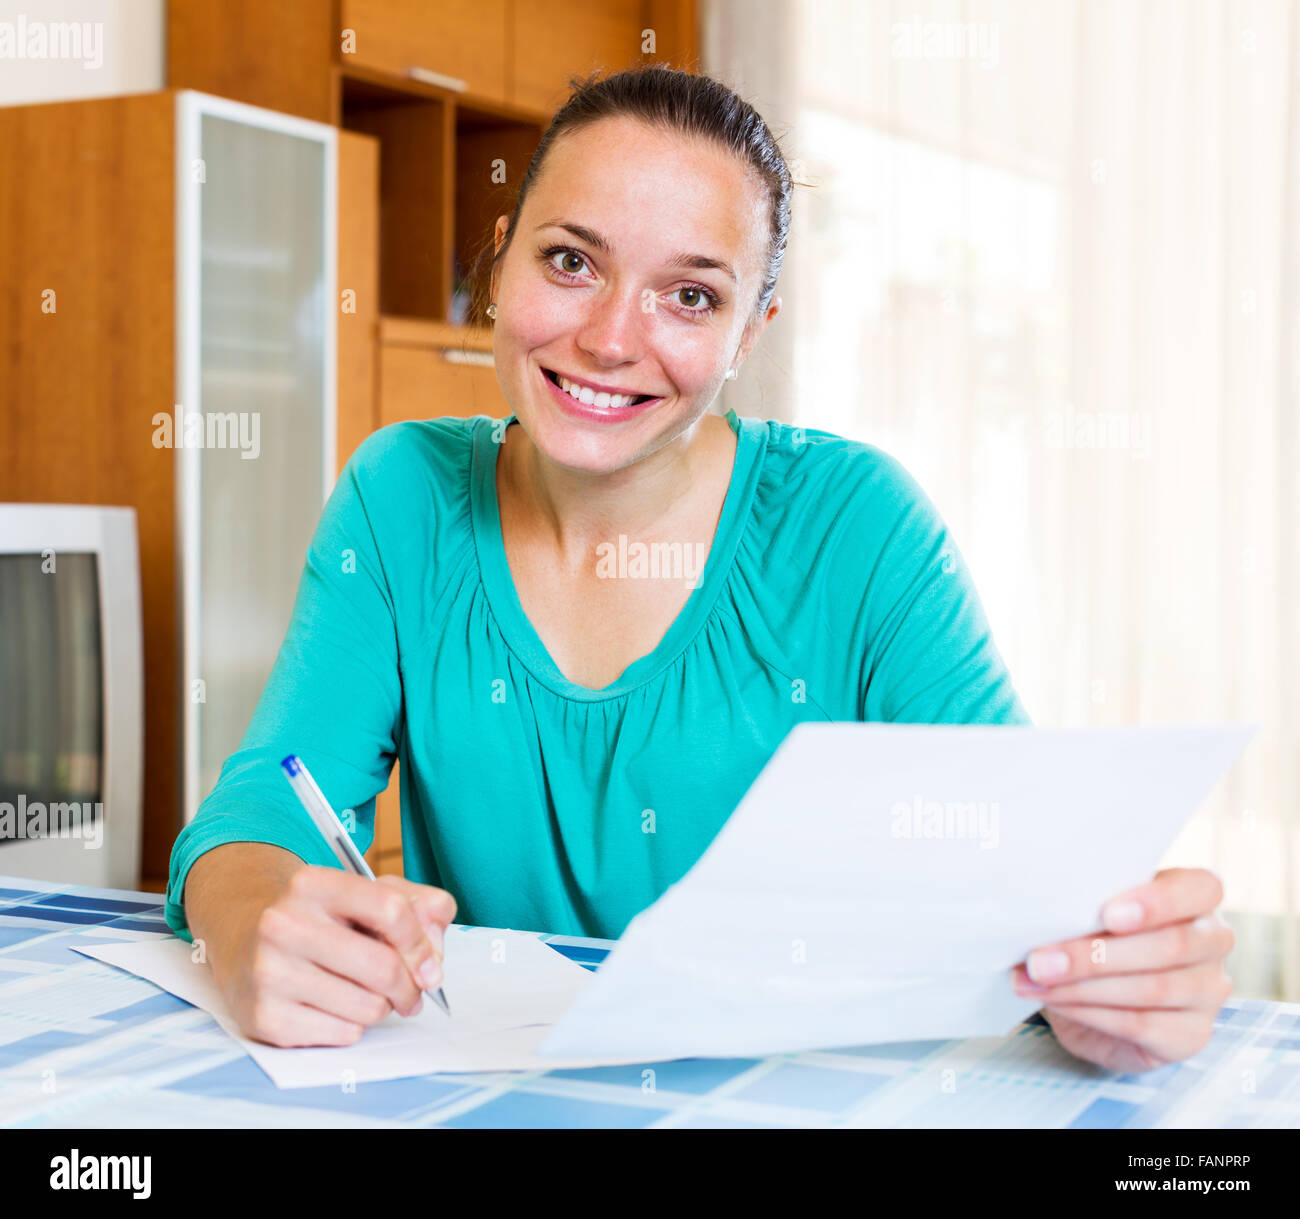 woman filling out tax form stock photos & woman filling out tax form